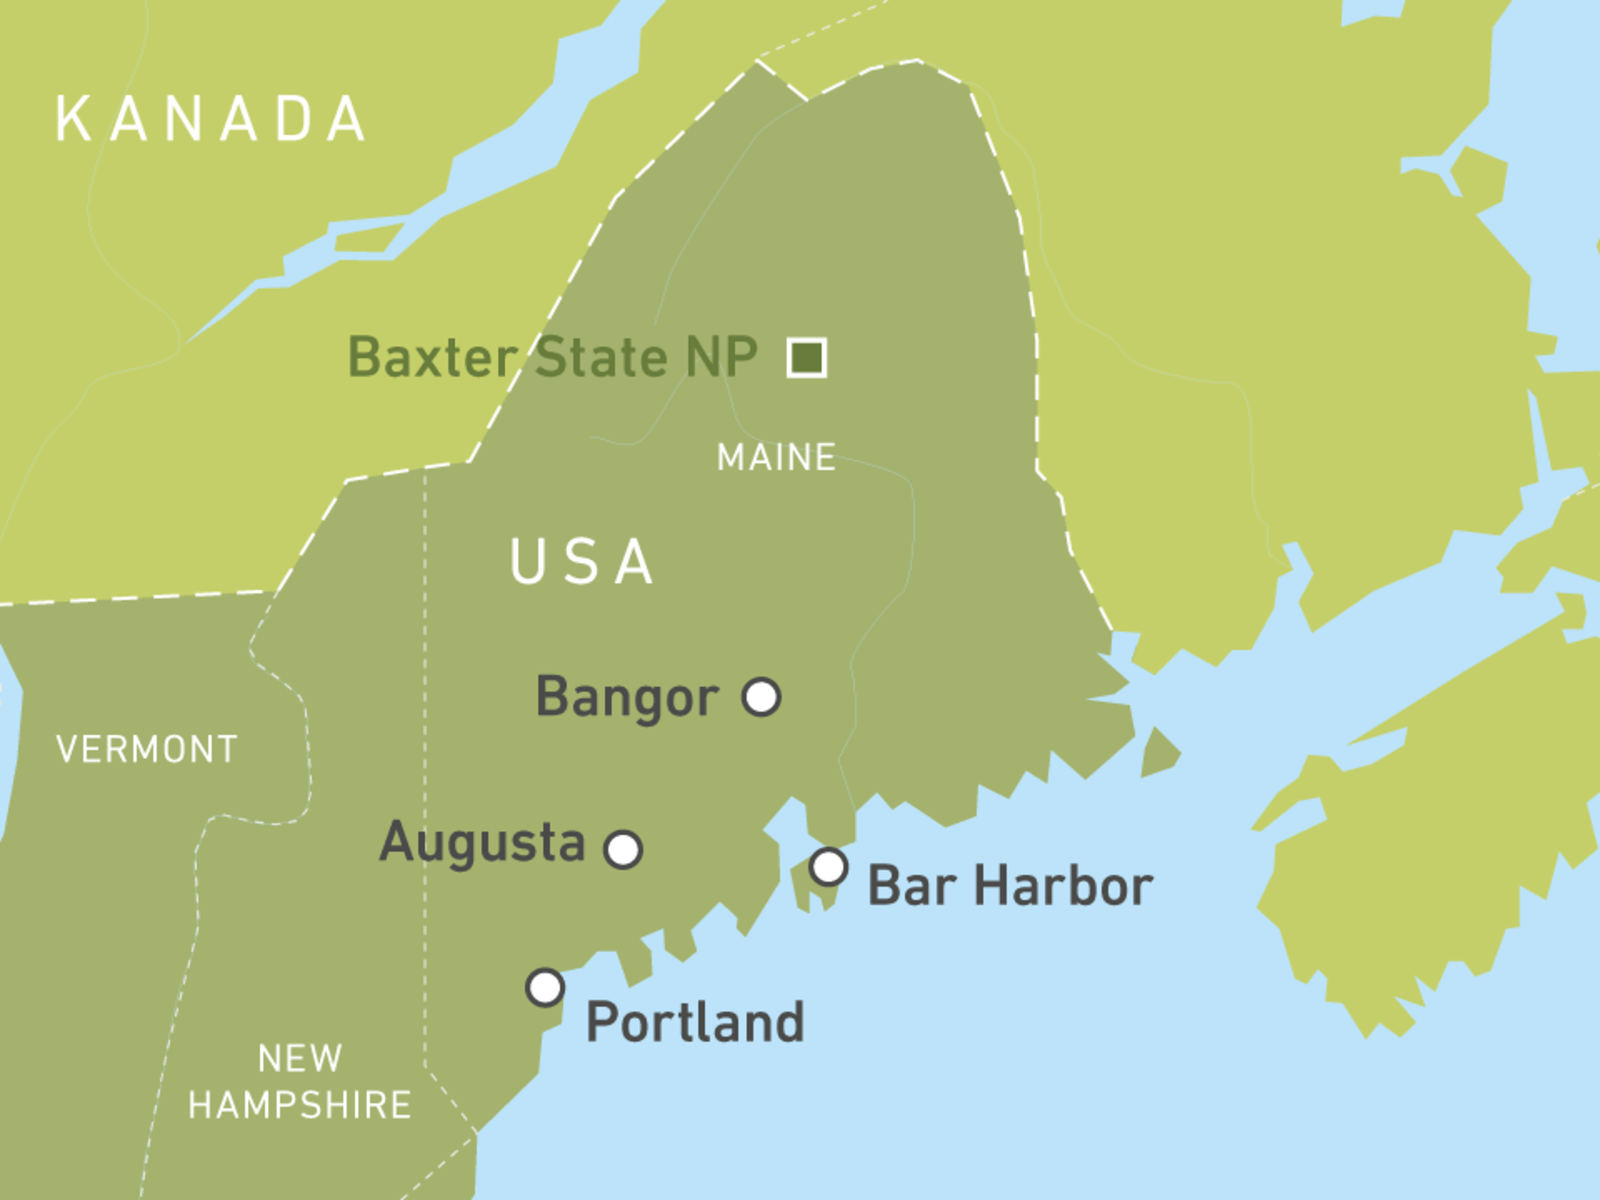 Maine Location On The US Map Maine Map Showing The Major Travel - State map of maine